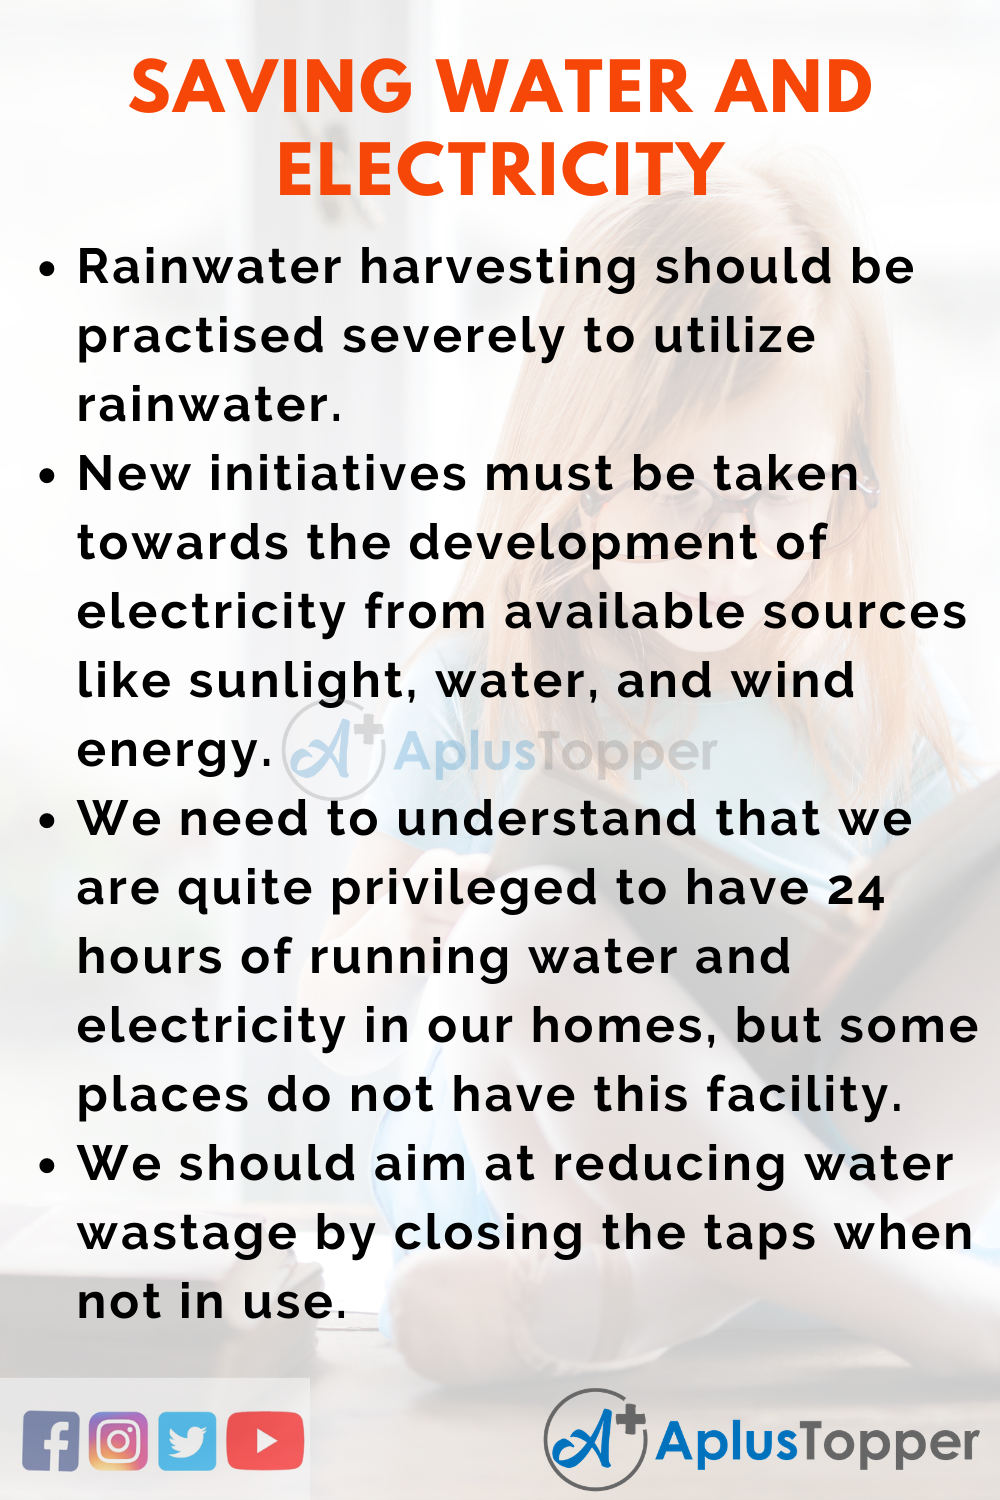 Essay about Saving Water and Electricity